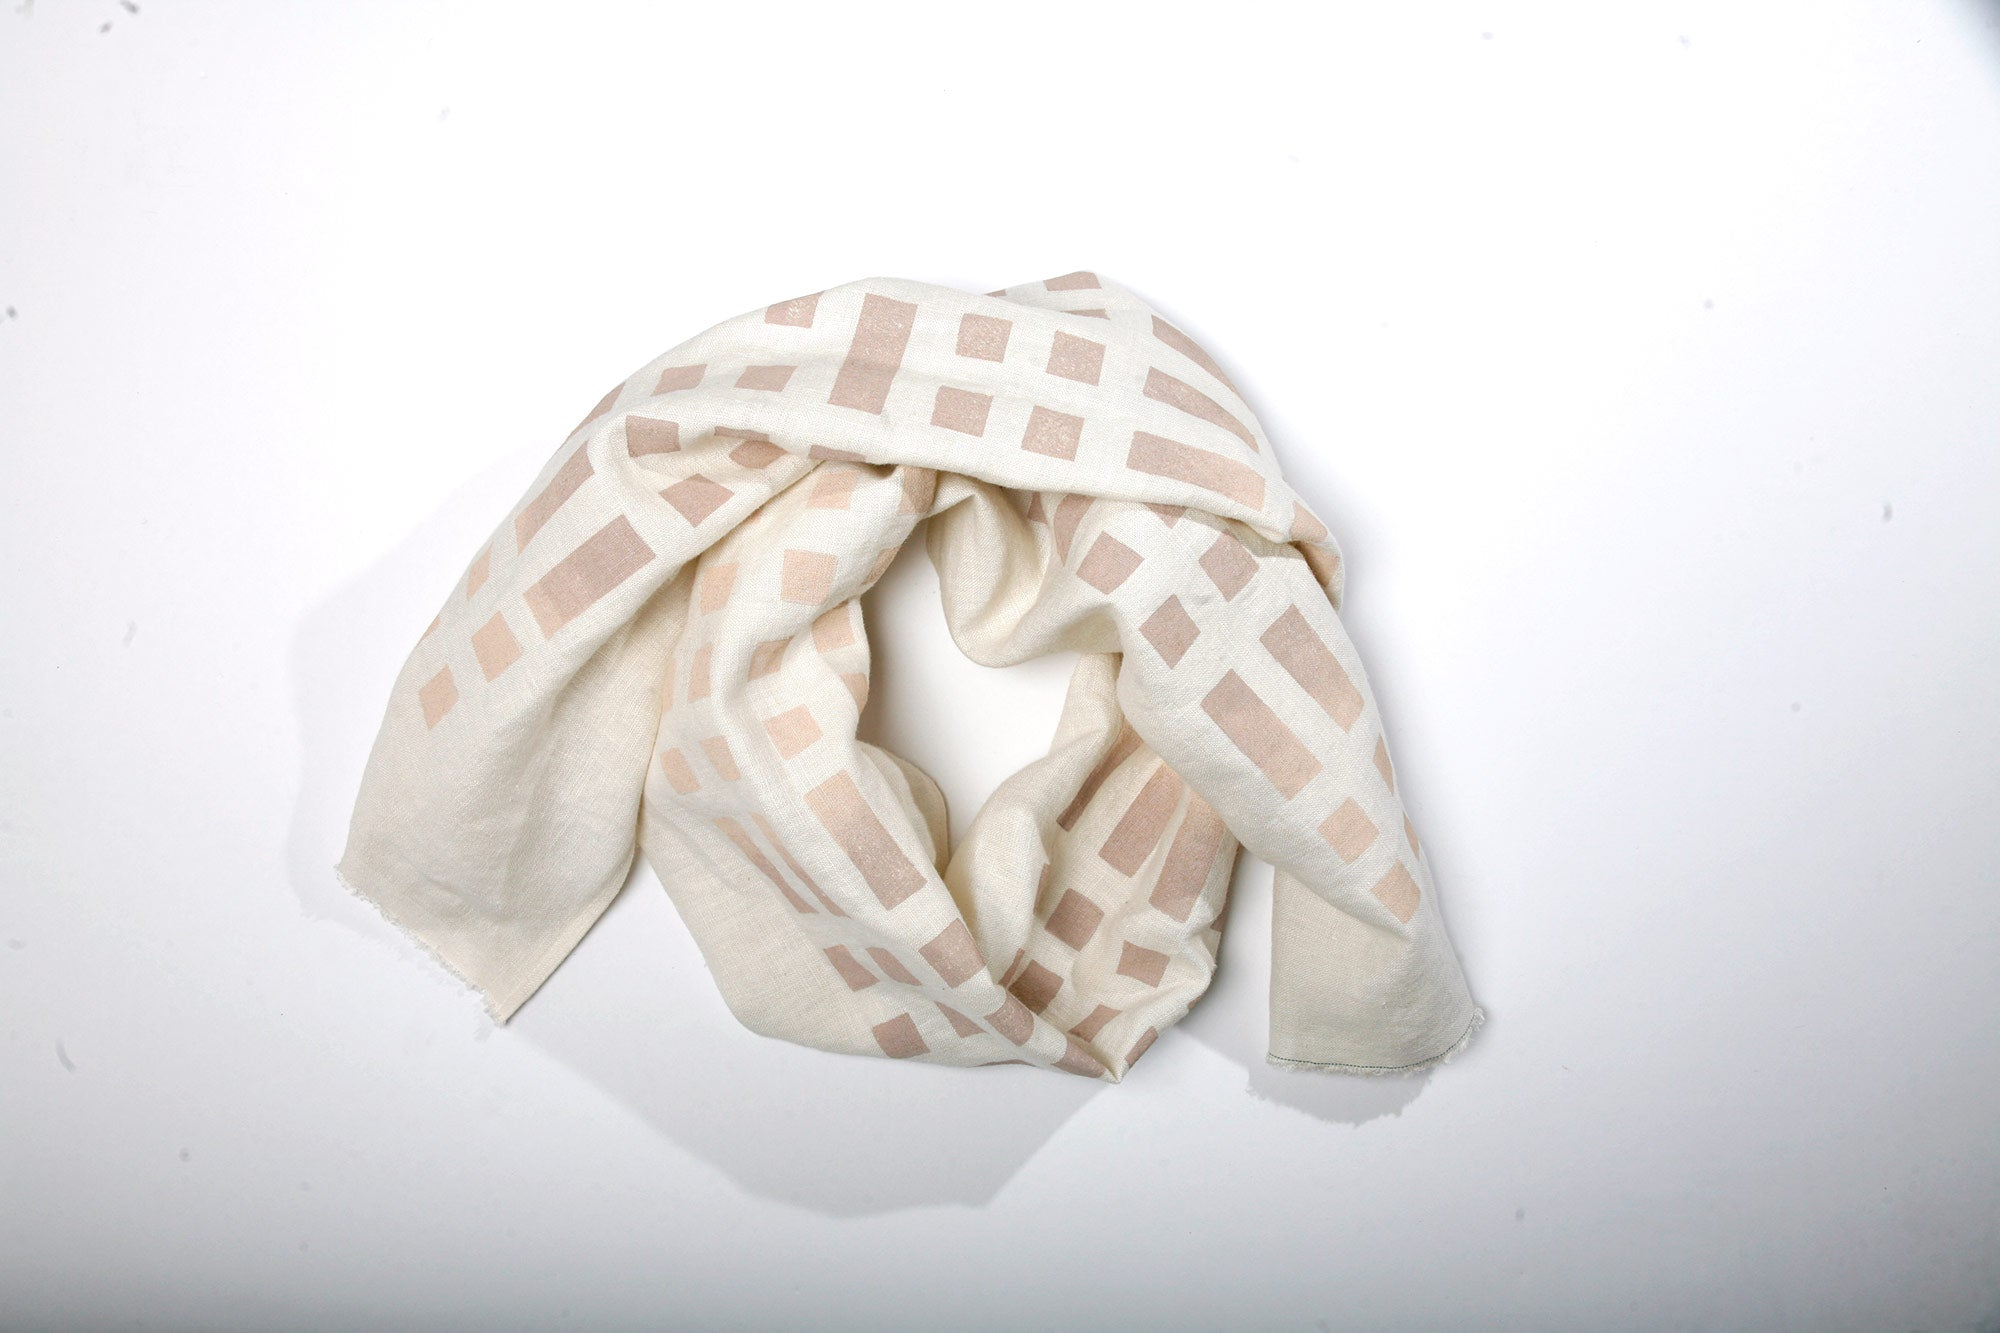 'Weave' Block Printed Just-Right Scarf in Ivory Colorway